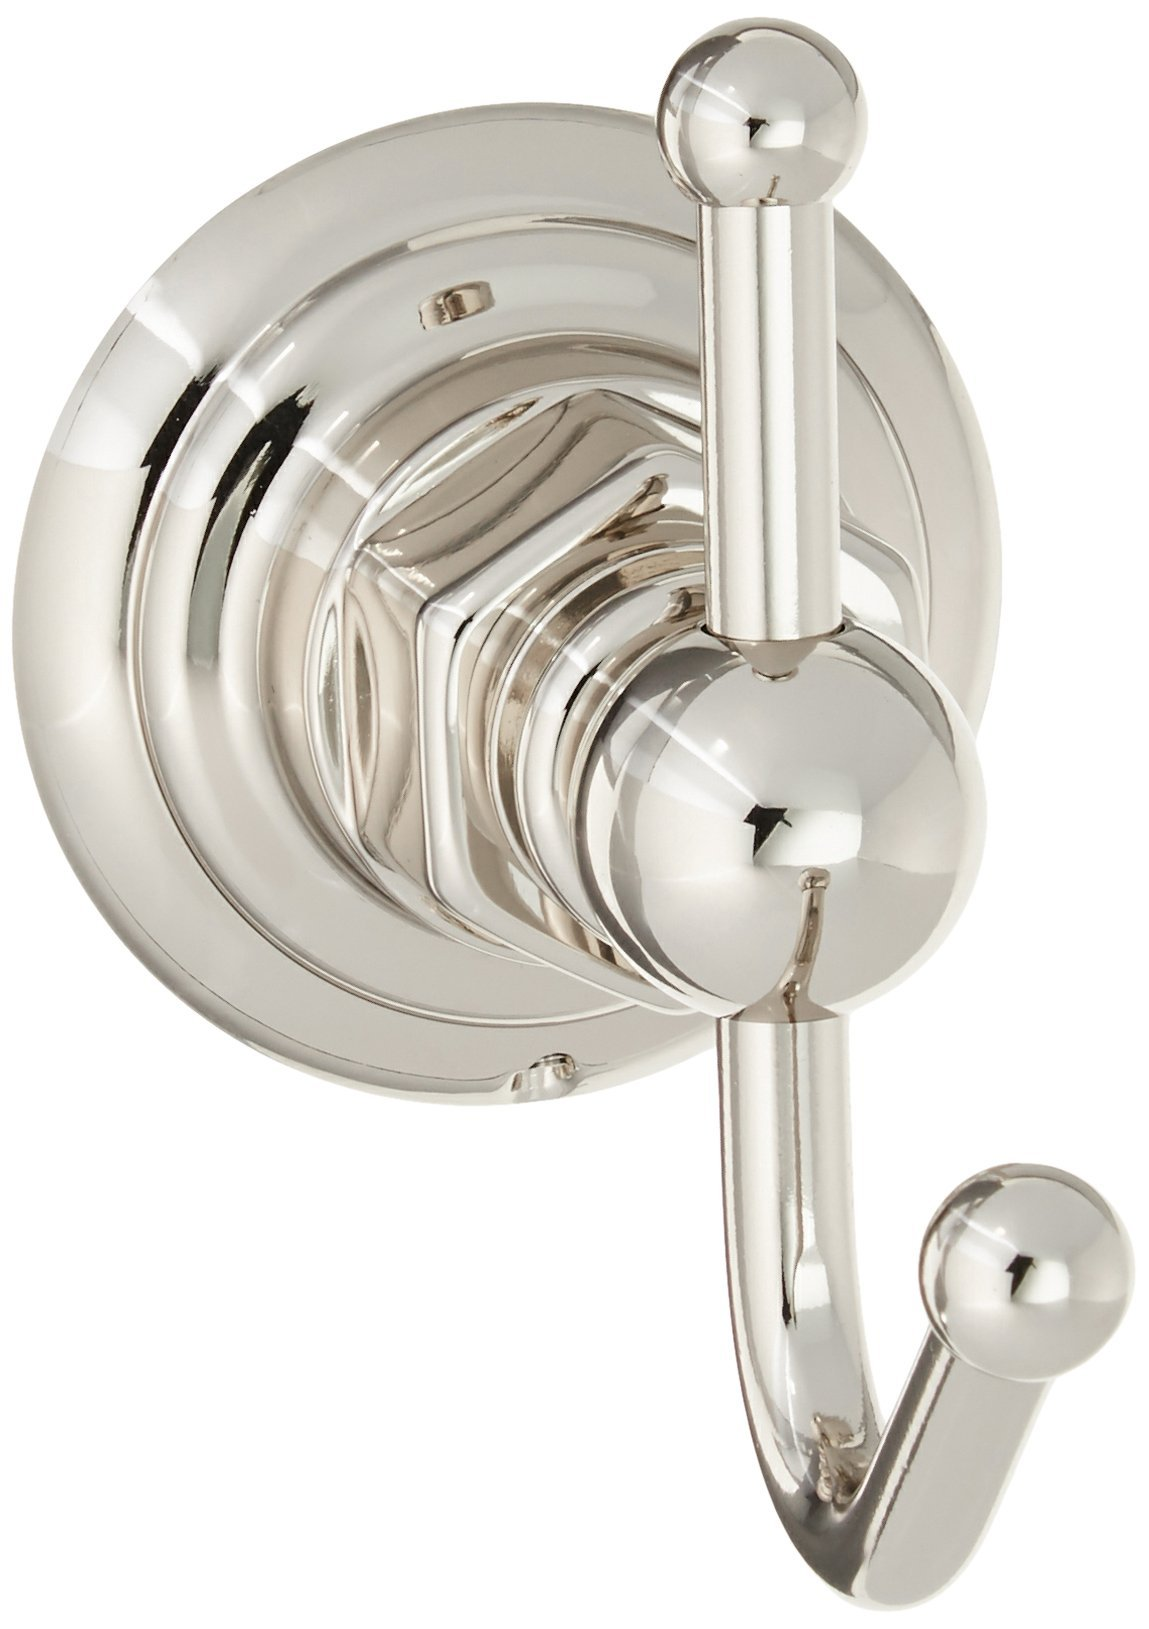 Rohl ROT7PN Country Bath Single Robe Hook in Polished Nickel by Rohl